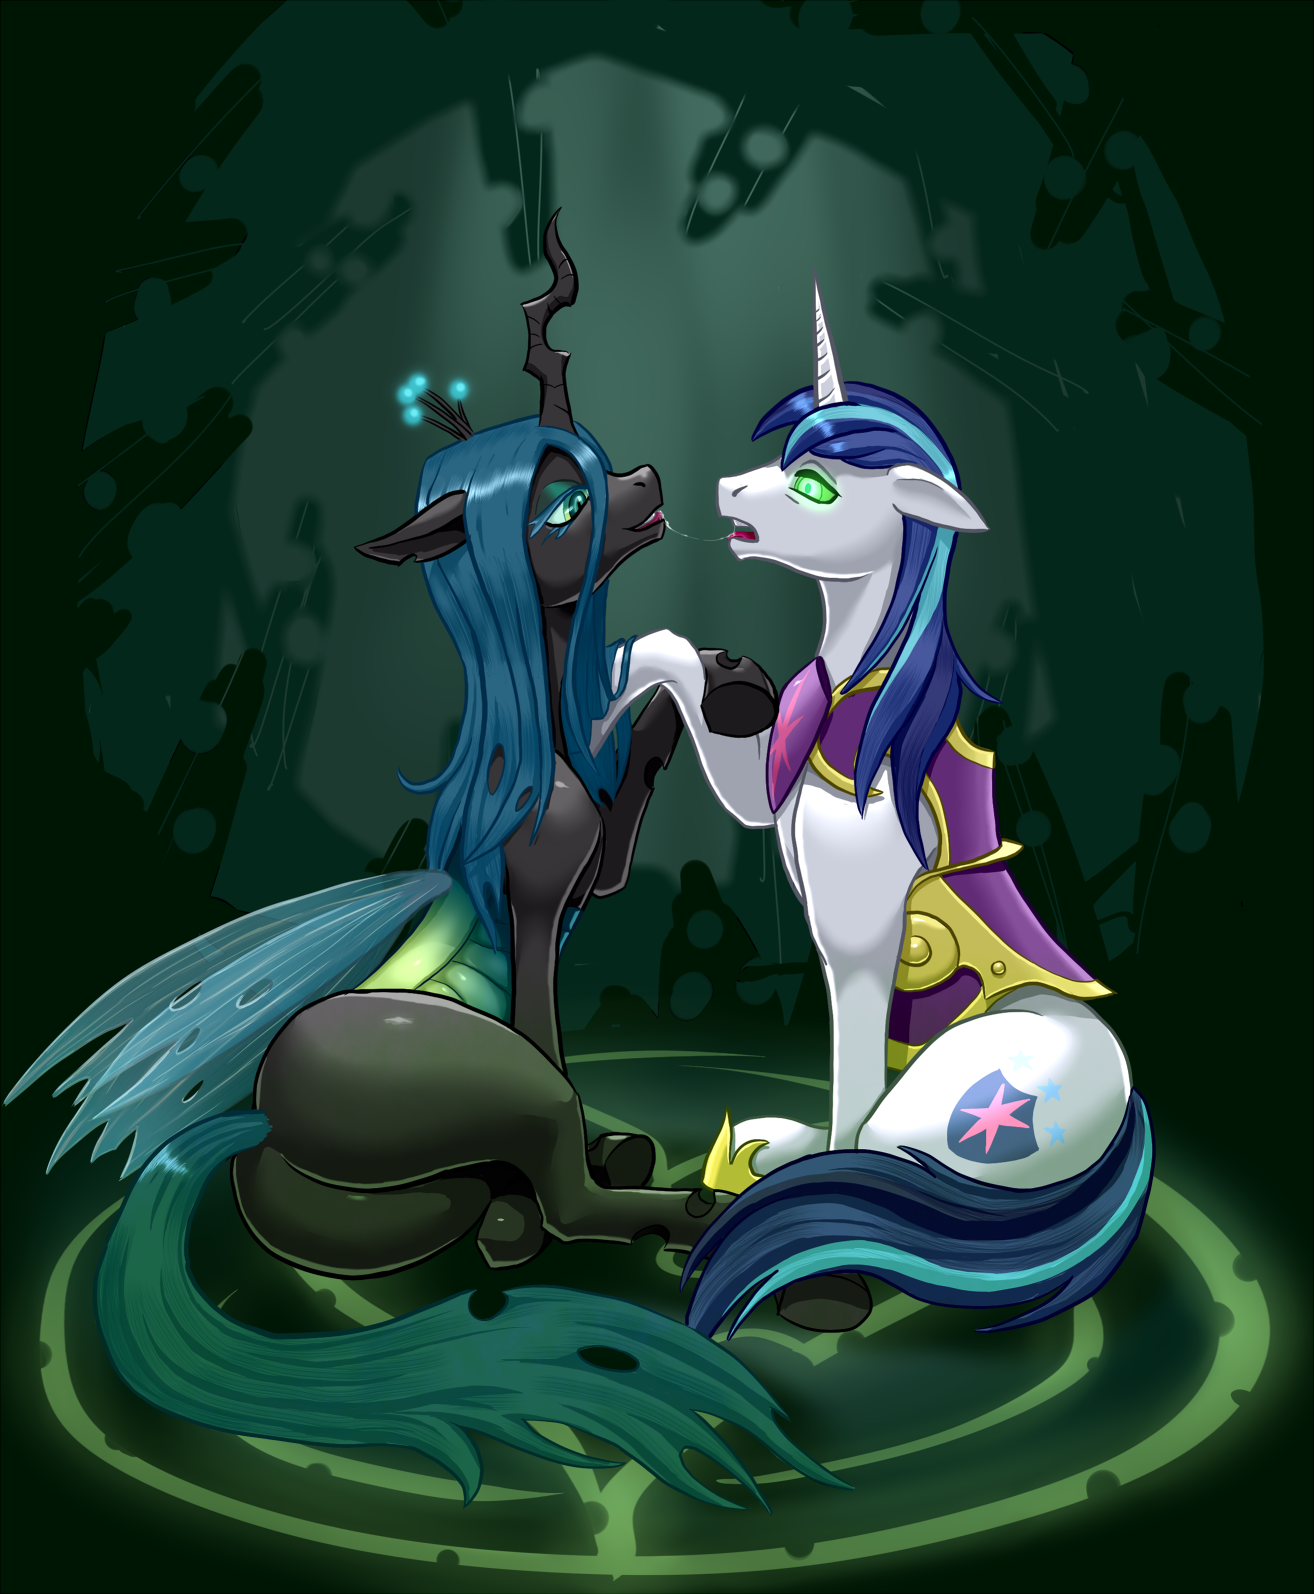 Queen Chrysalis And Shining Armor R34 Image - Queen Ch...